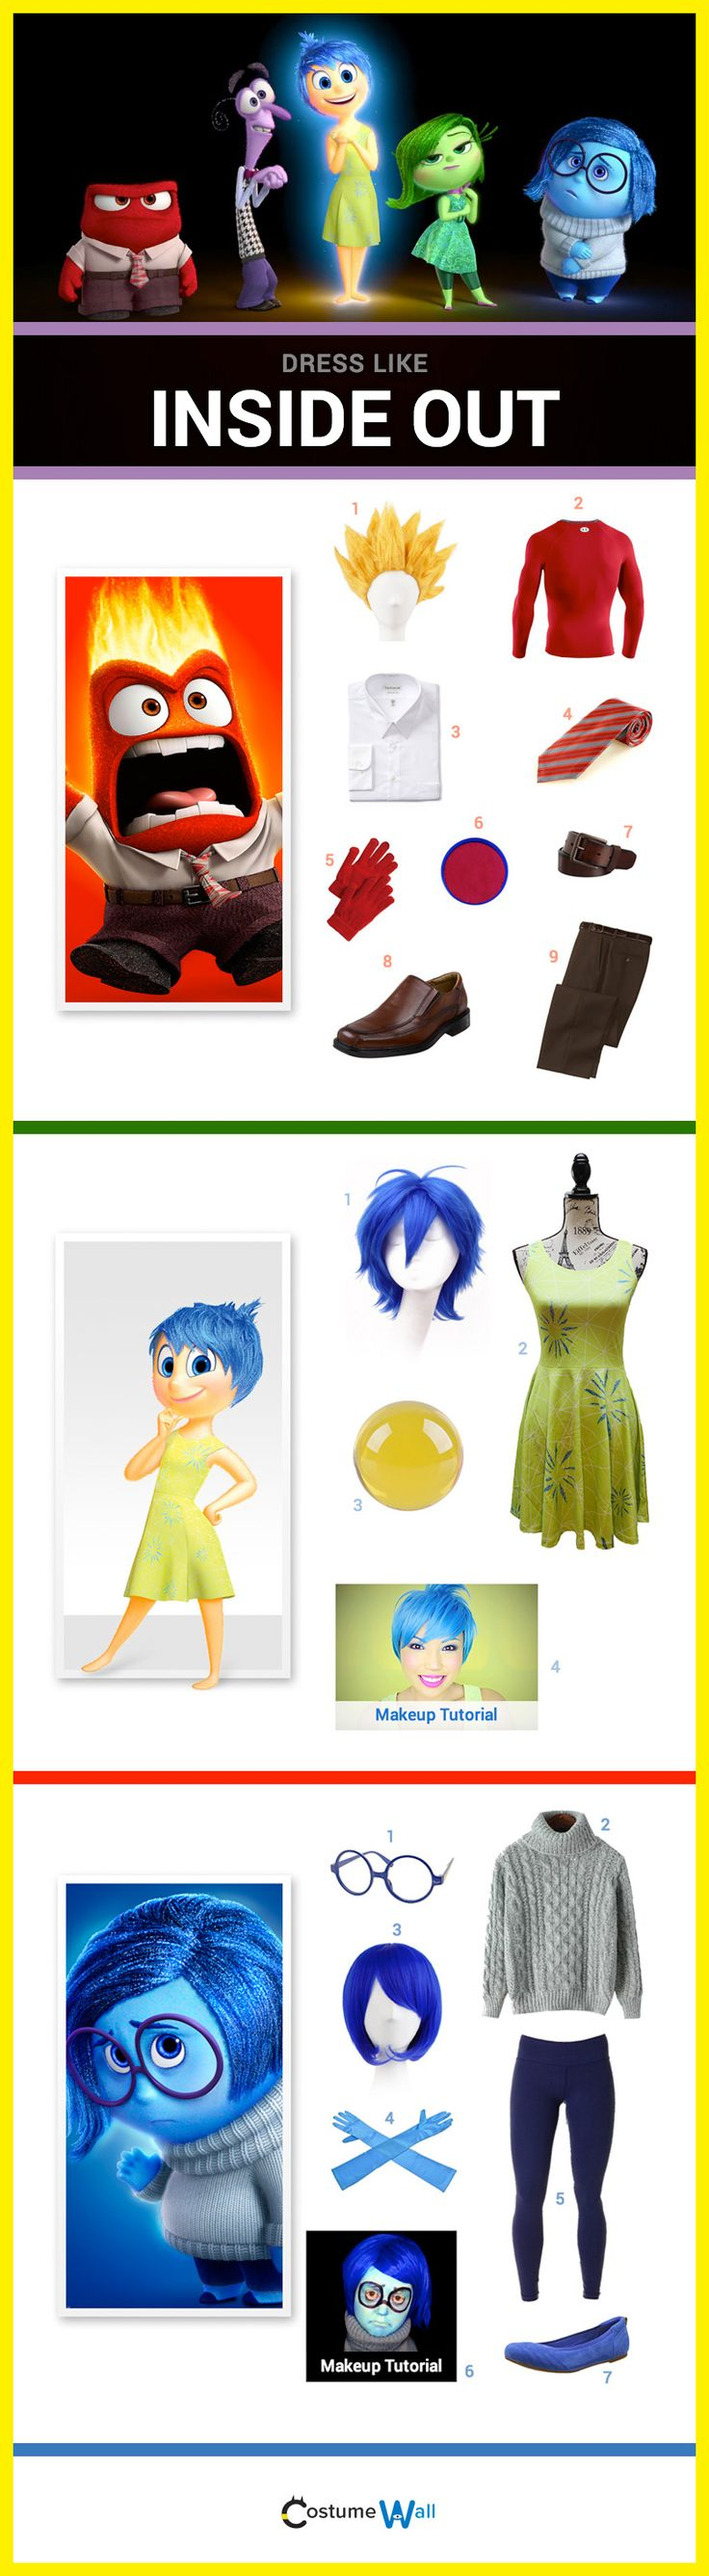 Costume inspiration from the hit Disney movie, Inside Out. Dress like Anger, Fear, Joy, Sadness, Disgust and Riley.